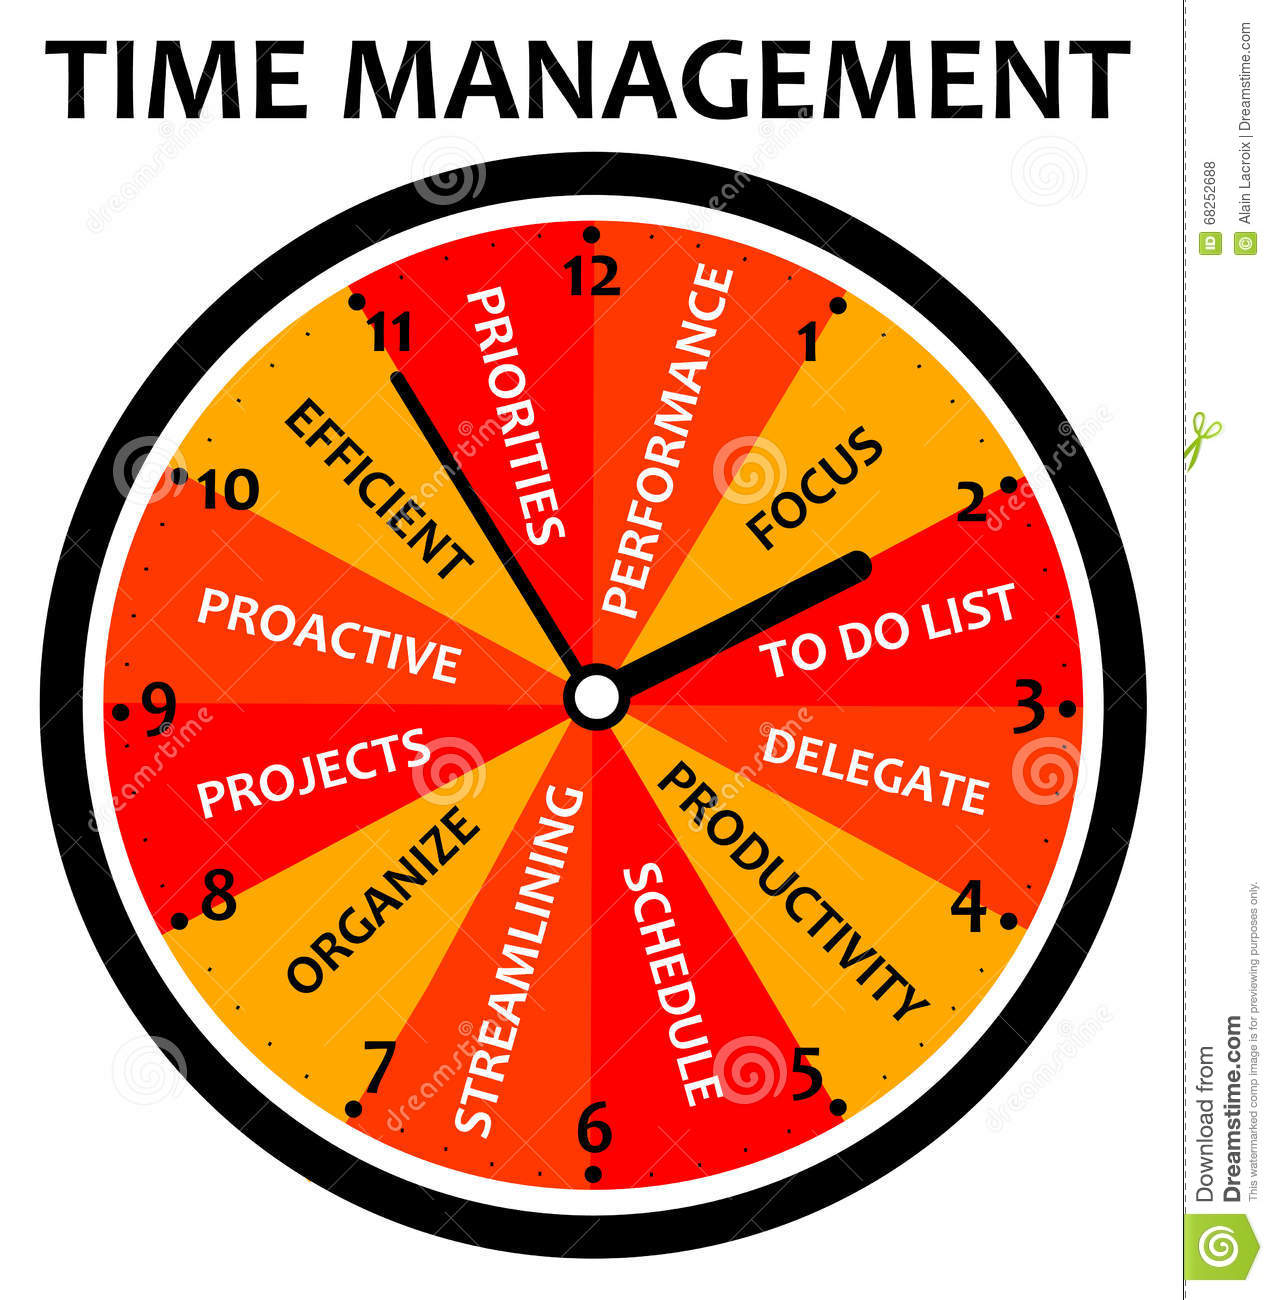 Time Management Stock Illustration Illustration Of Priorities 68252688